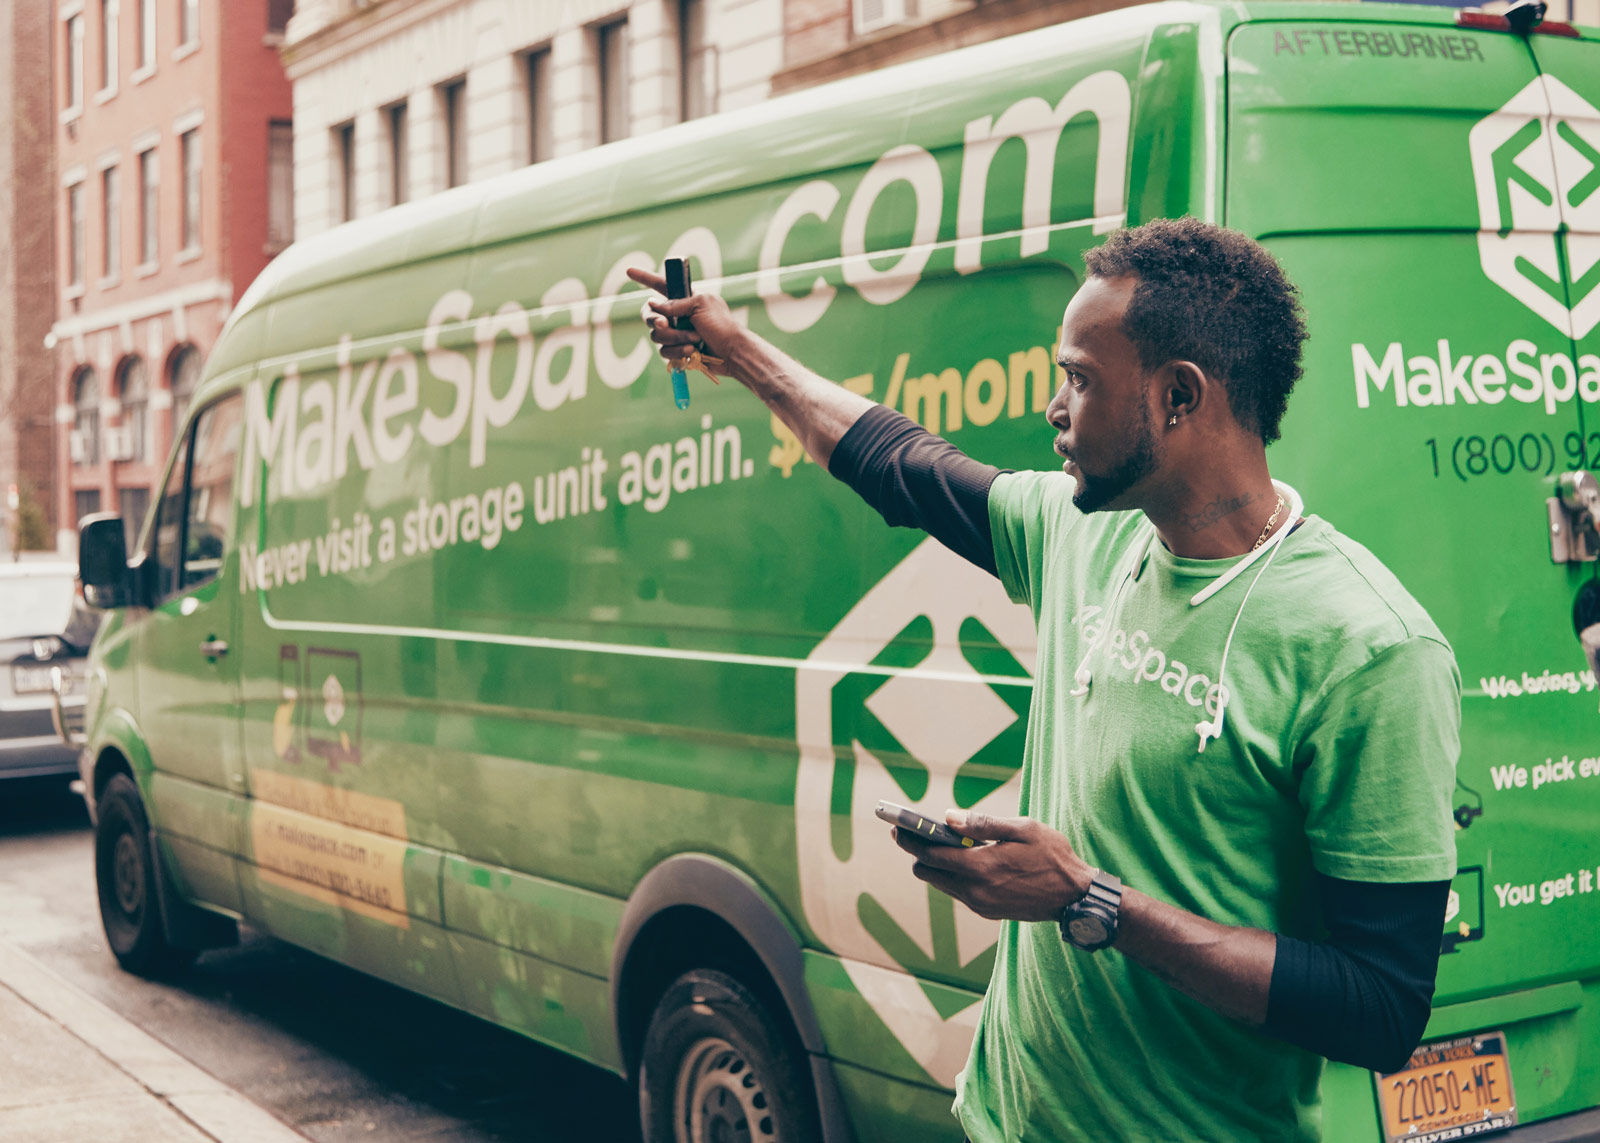 Darrell Green, MakeSpace Uploader, father, and veteran, is standing to the side of a MakeSpace van and pointing up in the air.